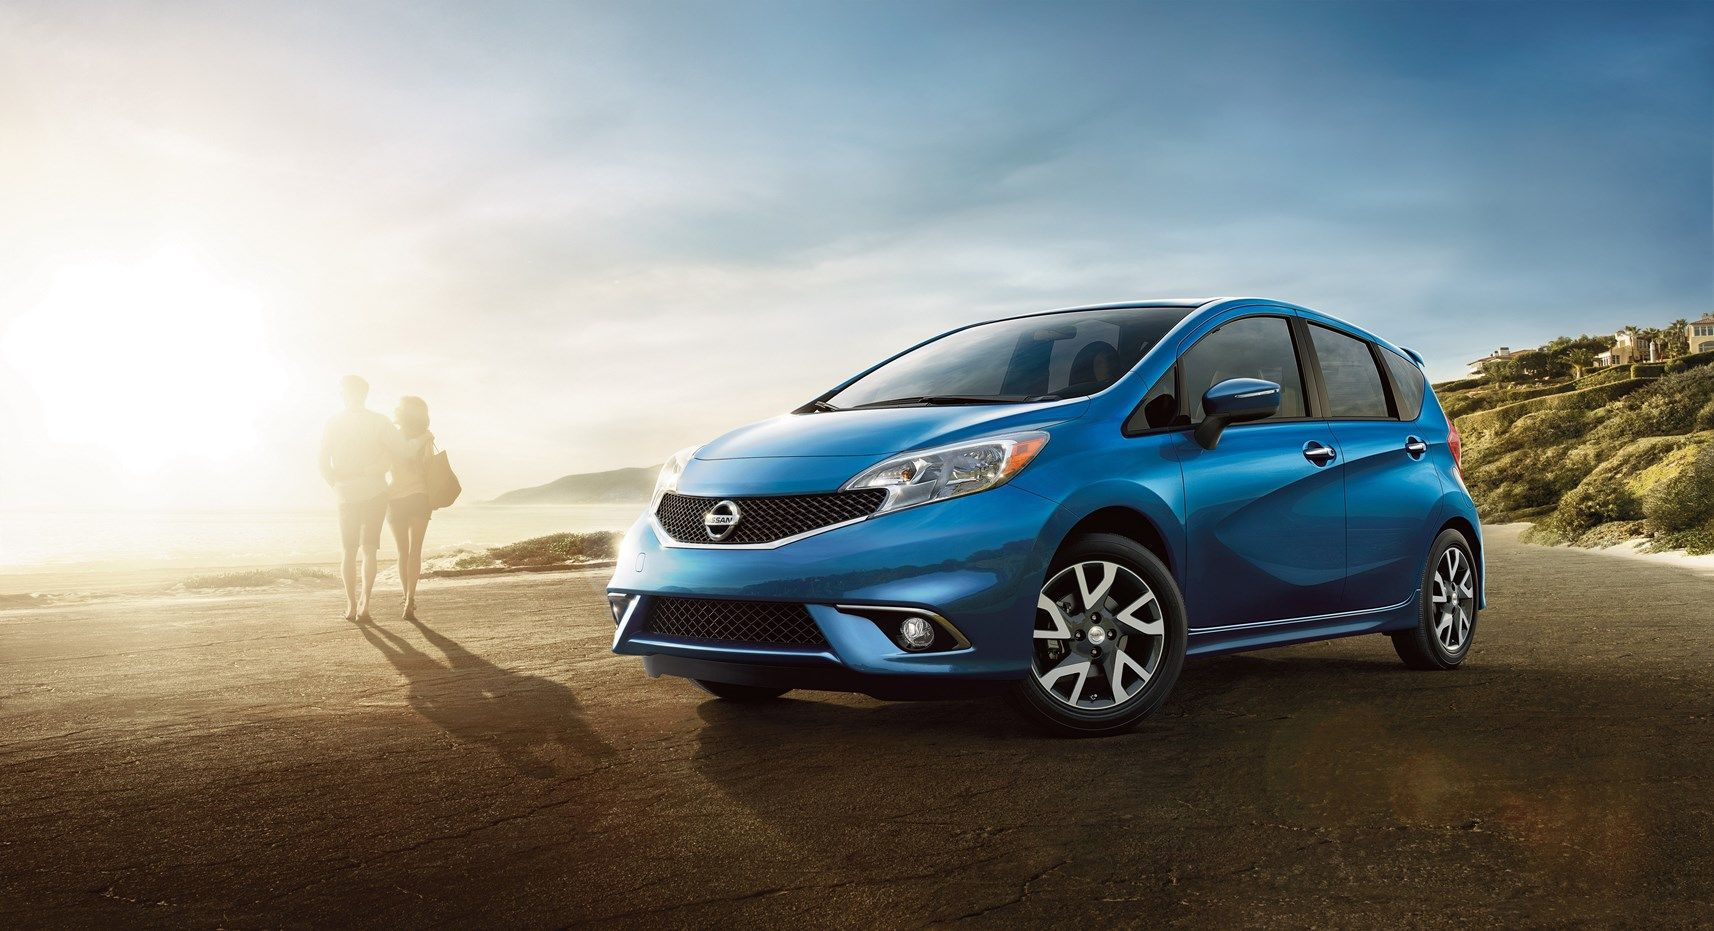 Business In The Front And A Whole Lot Of Trunk Space In The Back The Nissan Versa Note Is The Perfect Fit For Any Lifestyle With Images Nissan Versa Nissan Hatchback